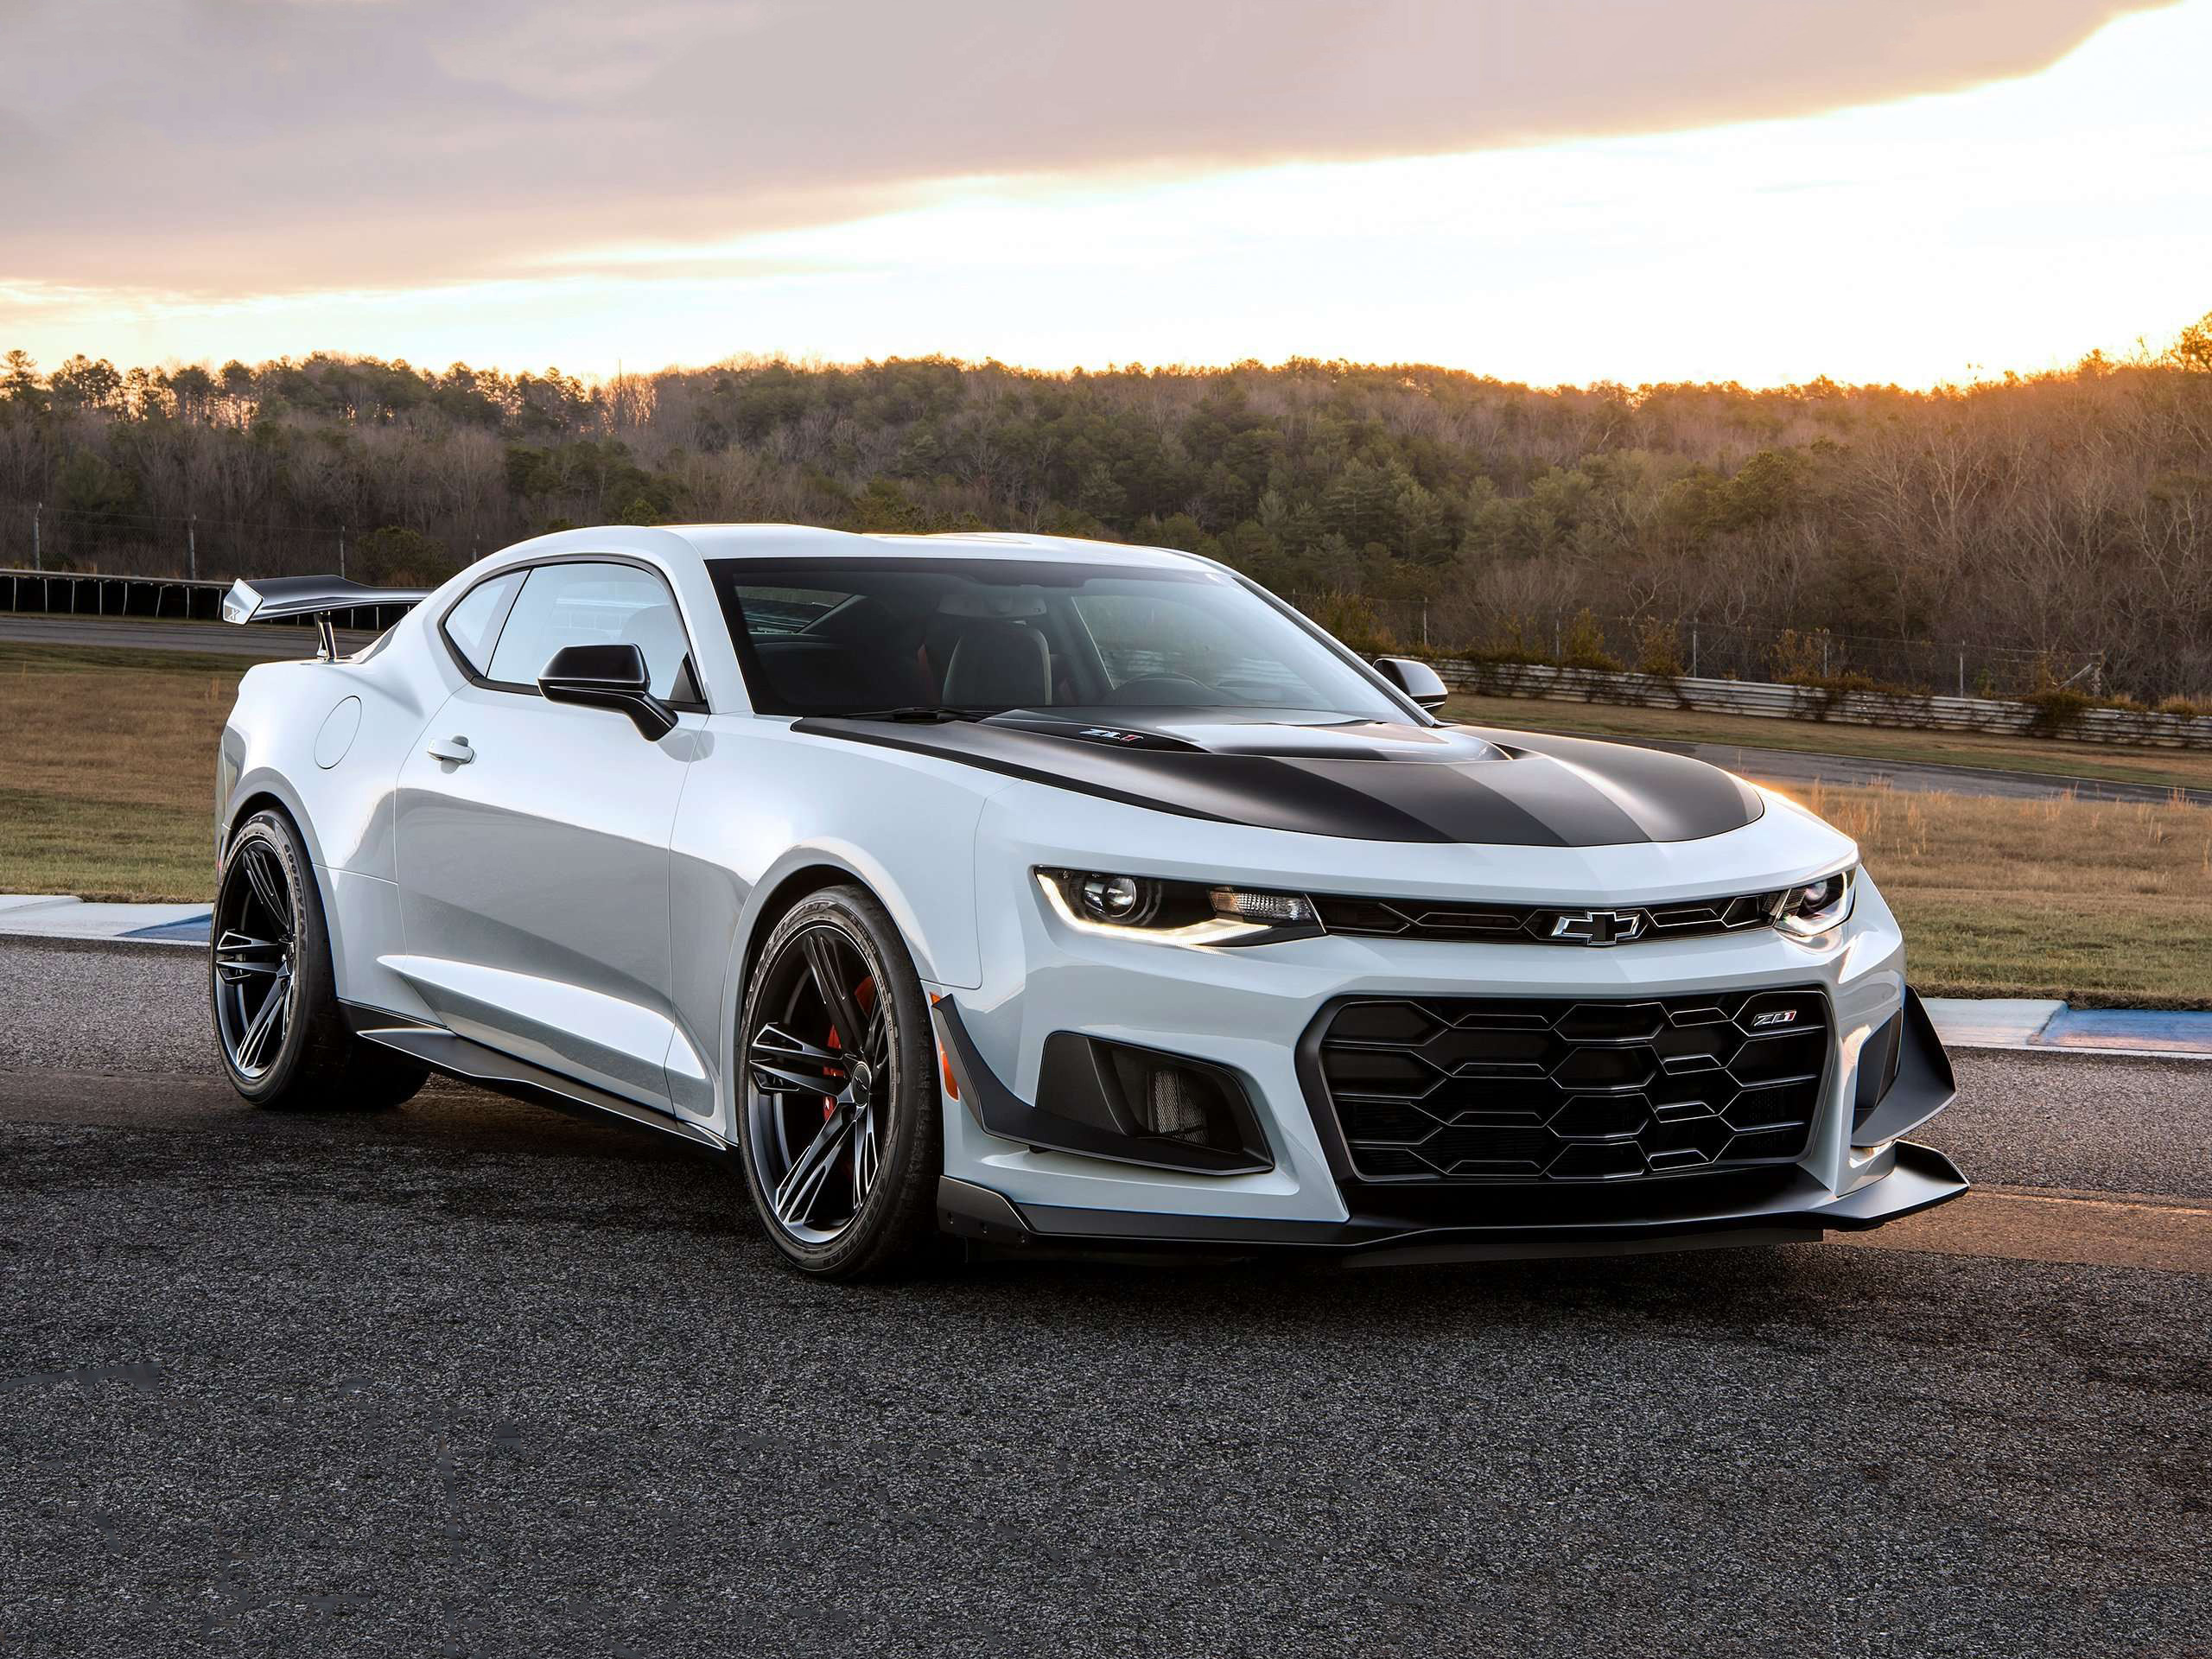 2018 camaro zl1 wallpapers (69+ background pictures)